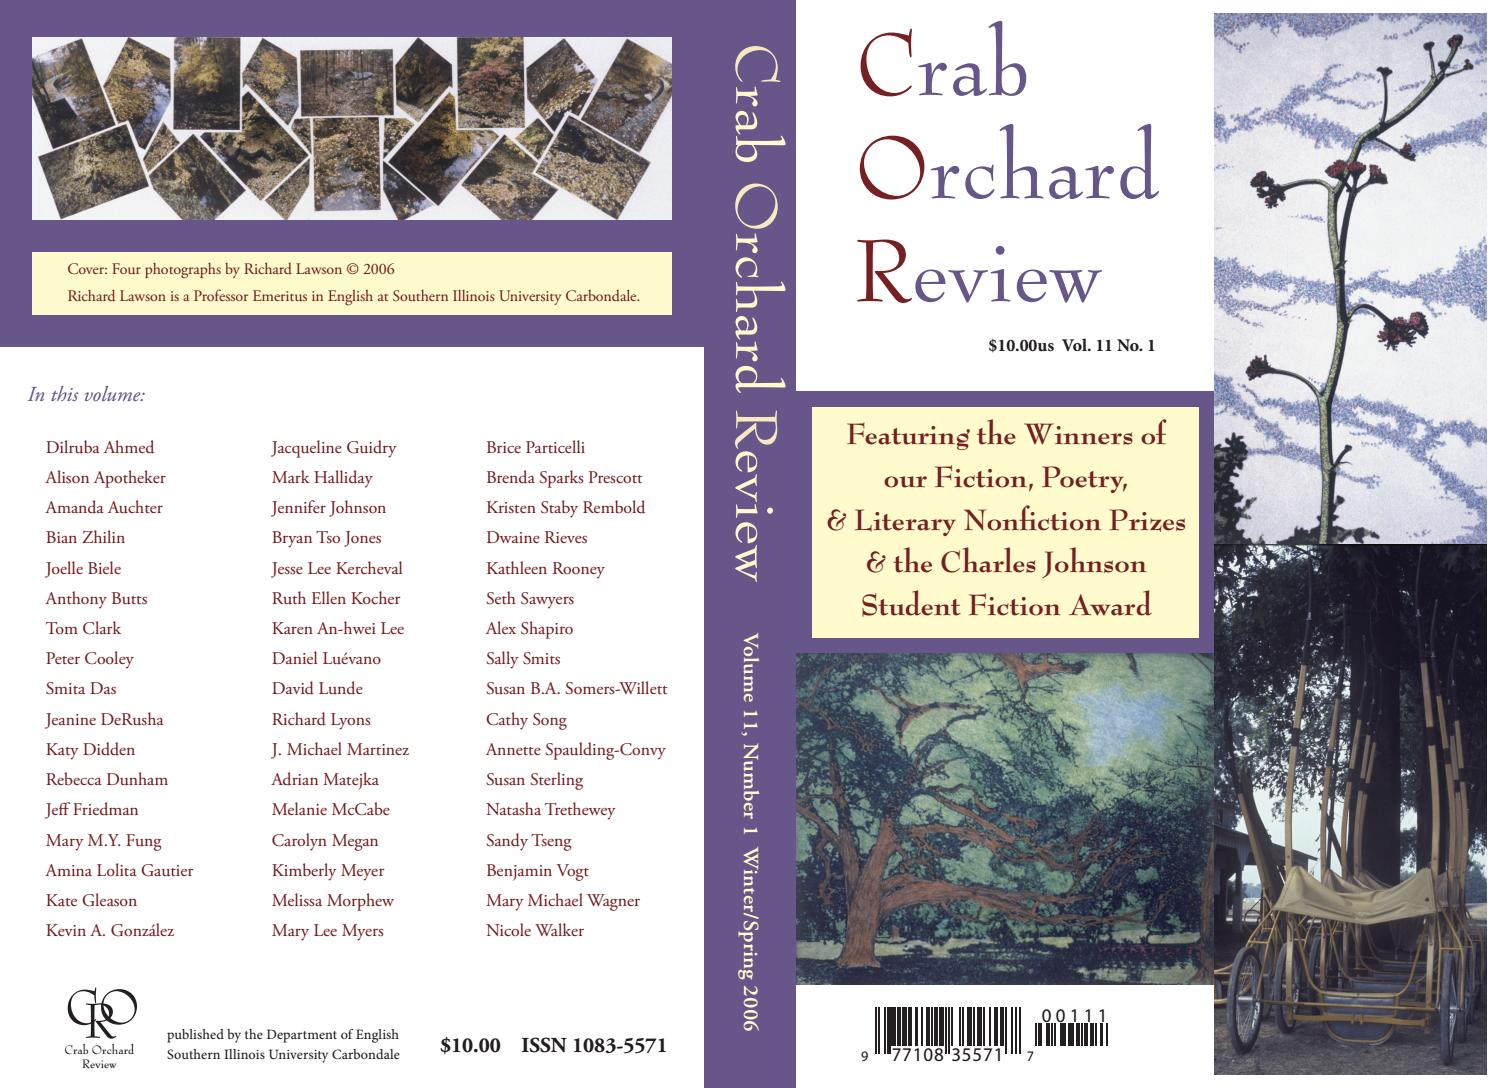 ac0b335805199c Crab Orchard Review Vol 11 No 1 W/S 2006 by Crab Orchard Review - issuu